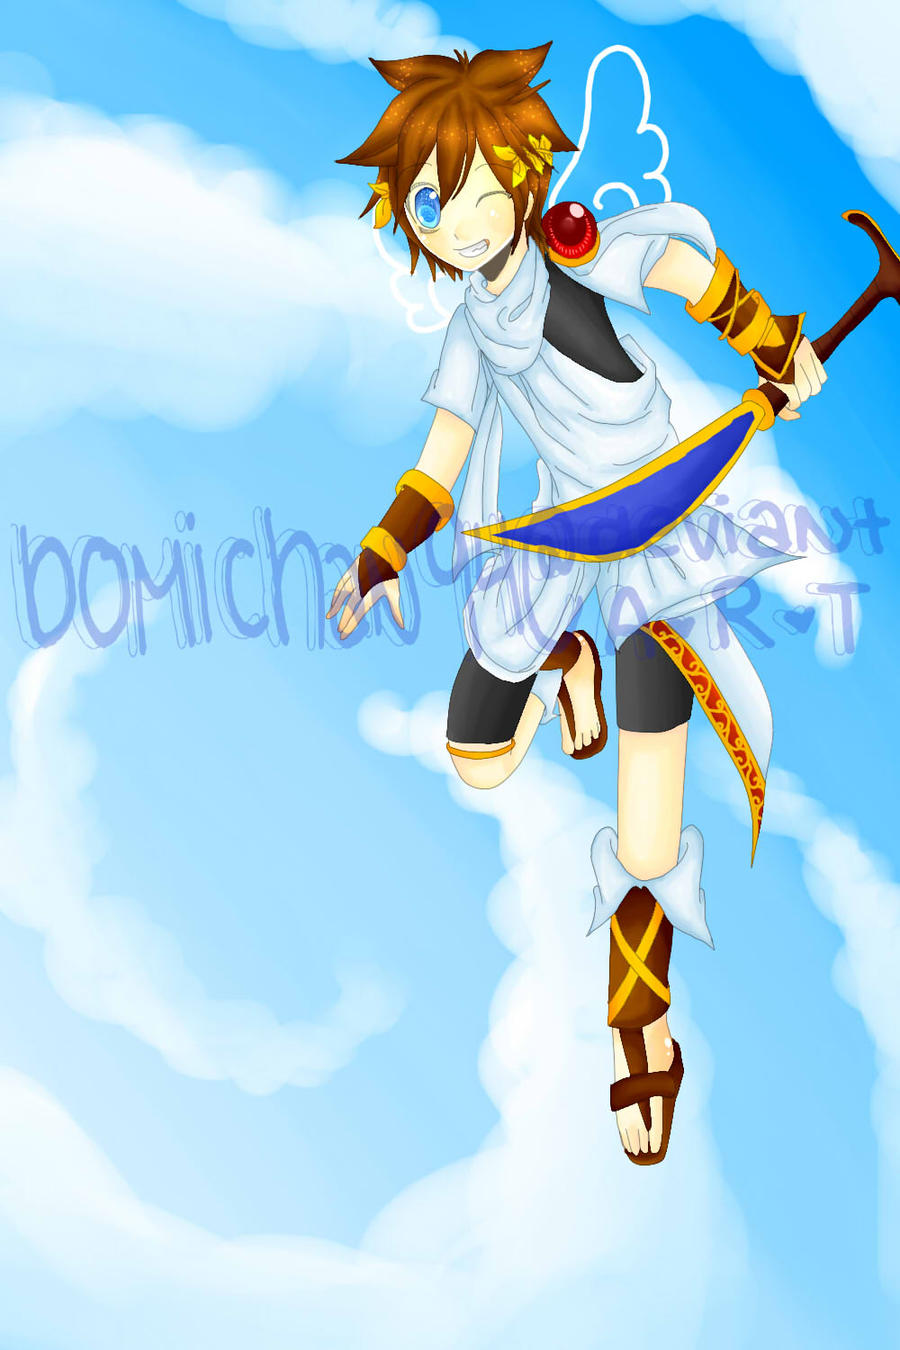 Kid Icarus Pit By BomiChan94 On DeviantArt